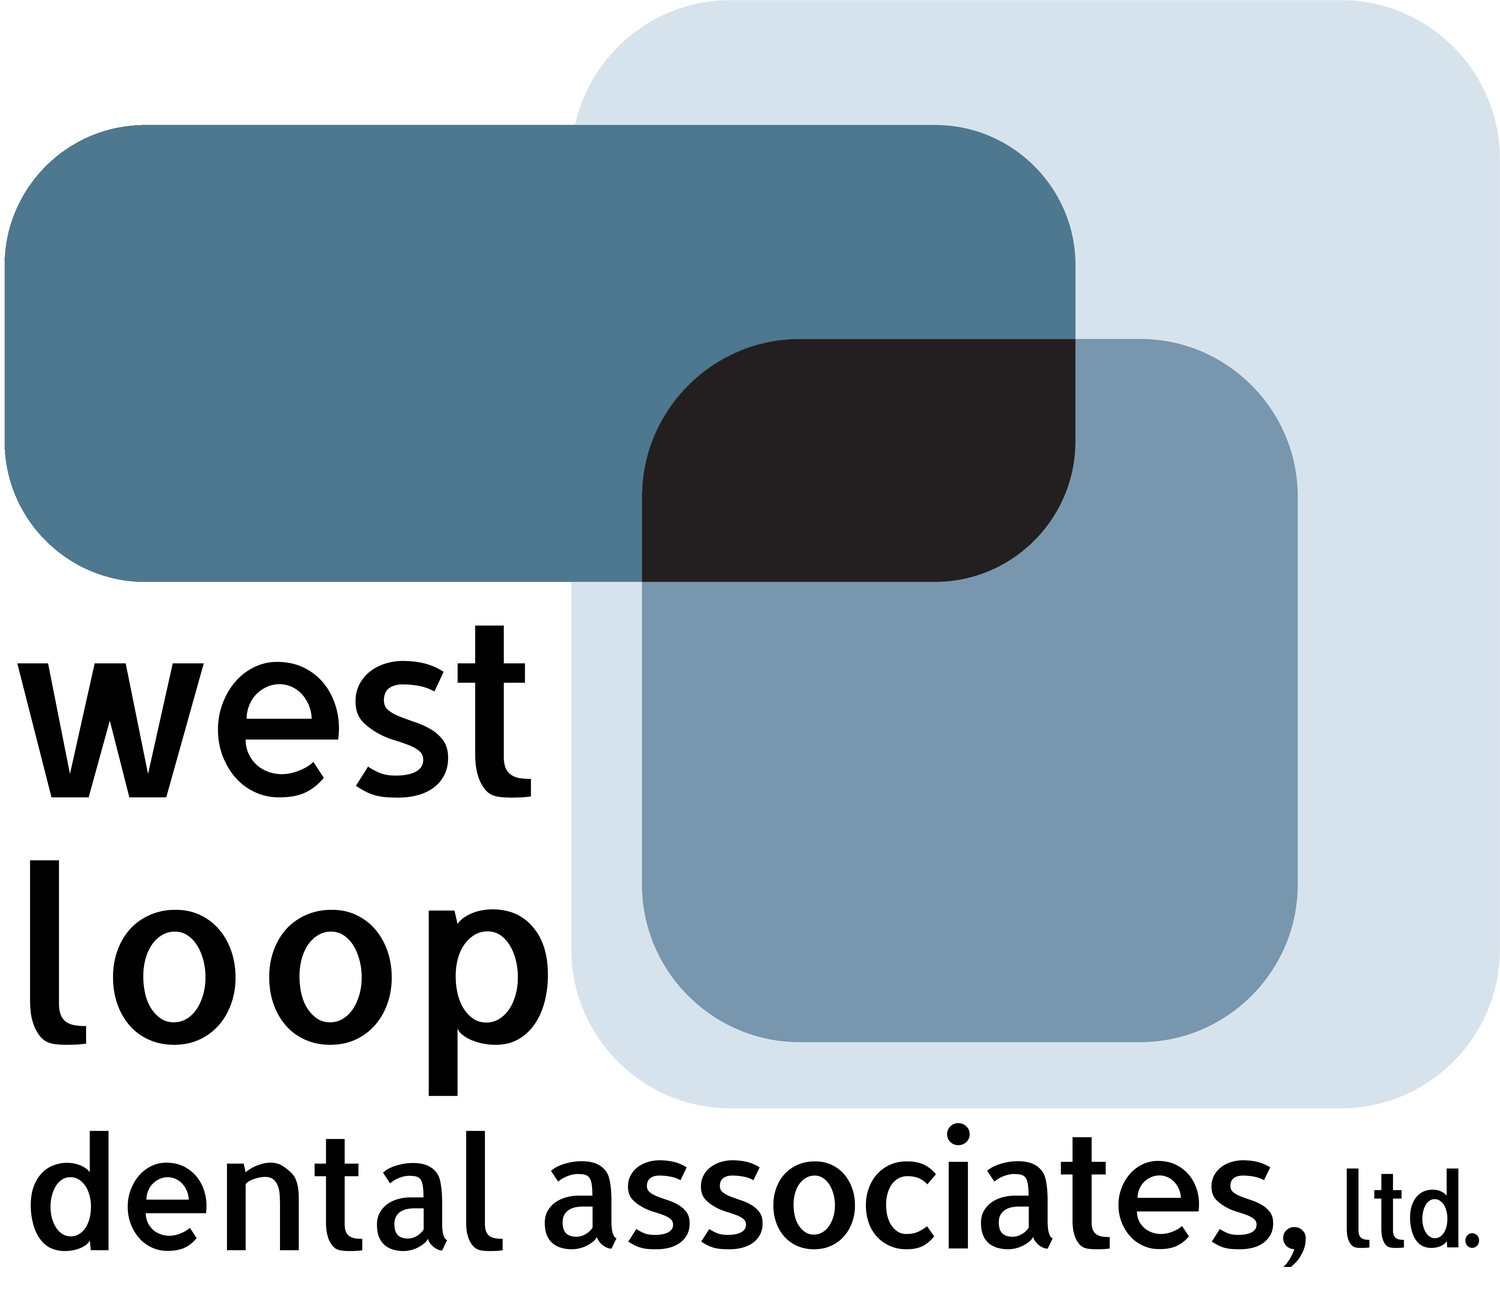 West Loop Dental Associates: Dr. Richard J. Cooper, DDS - Chicago Dentist